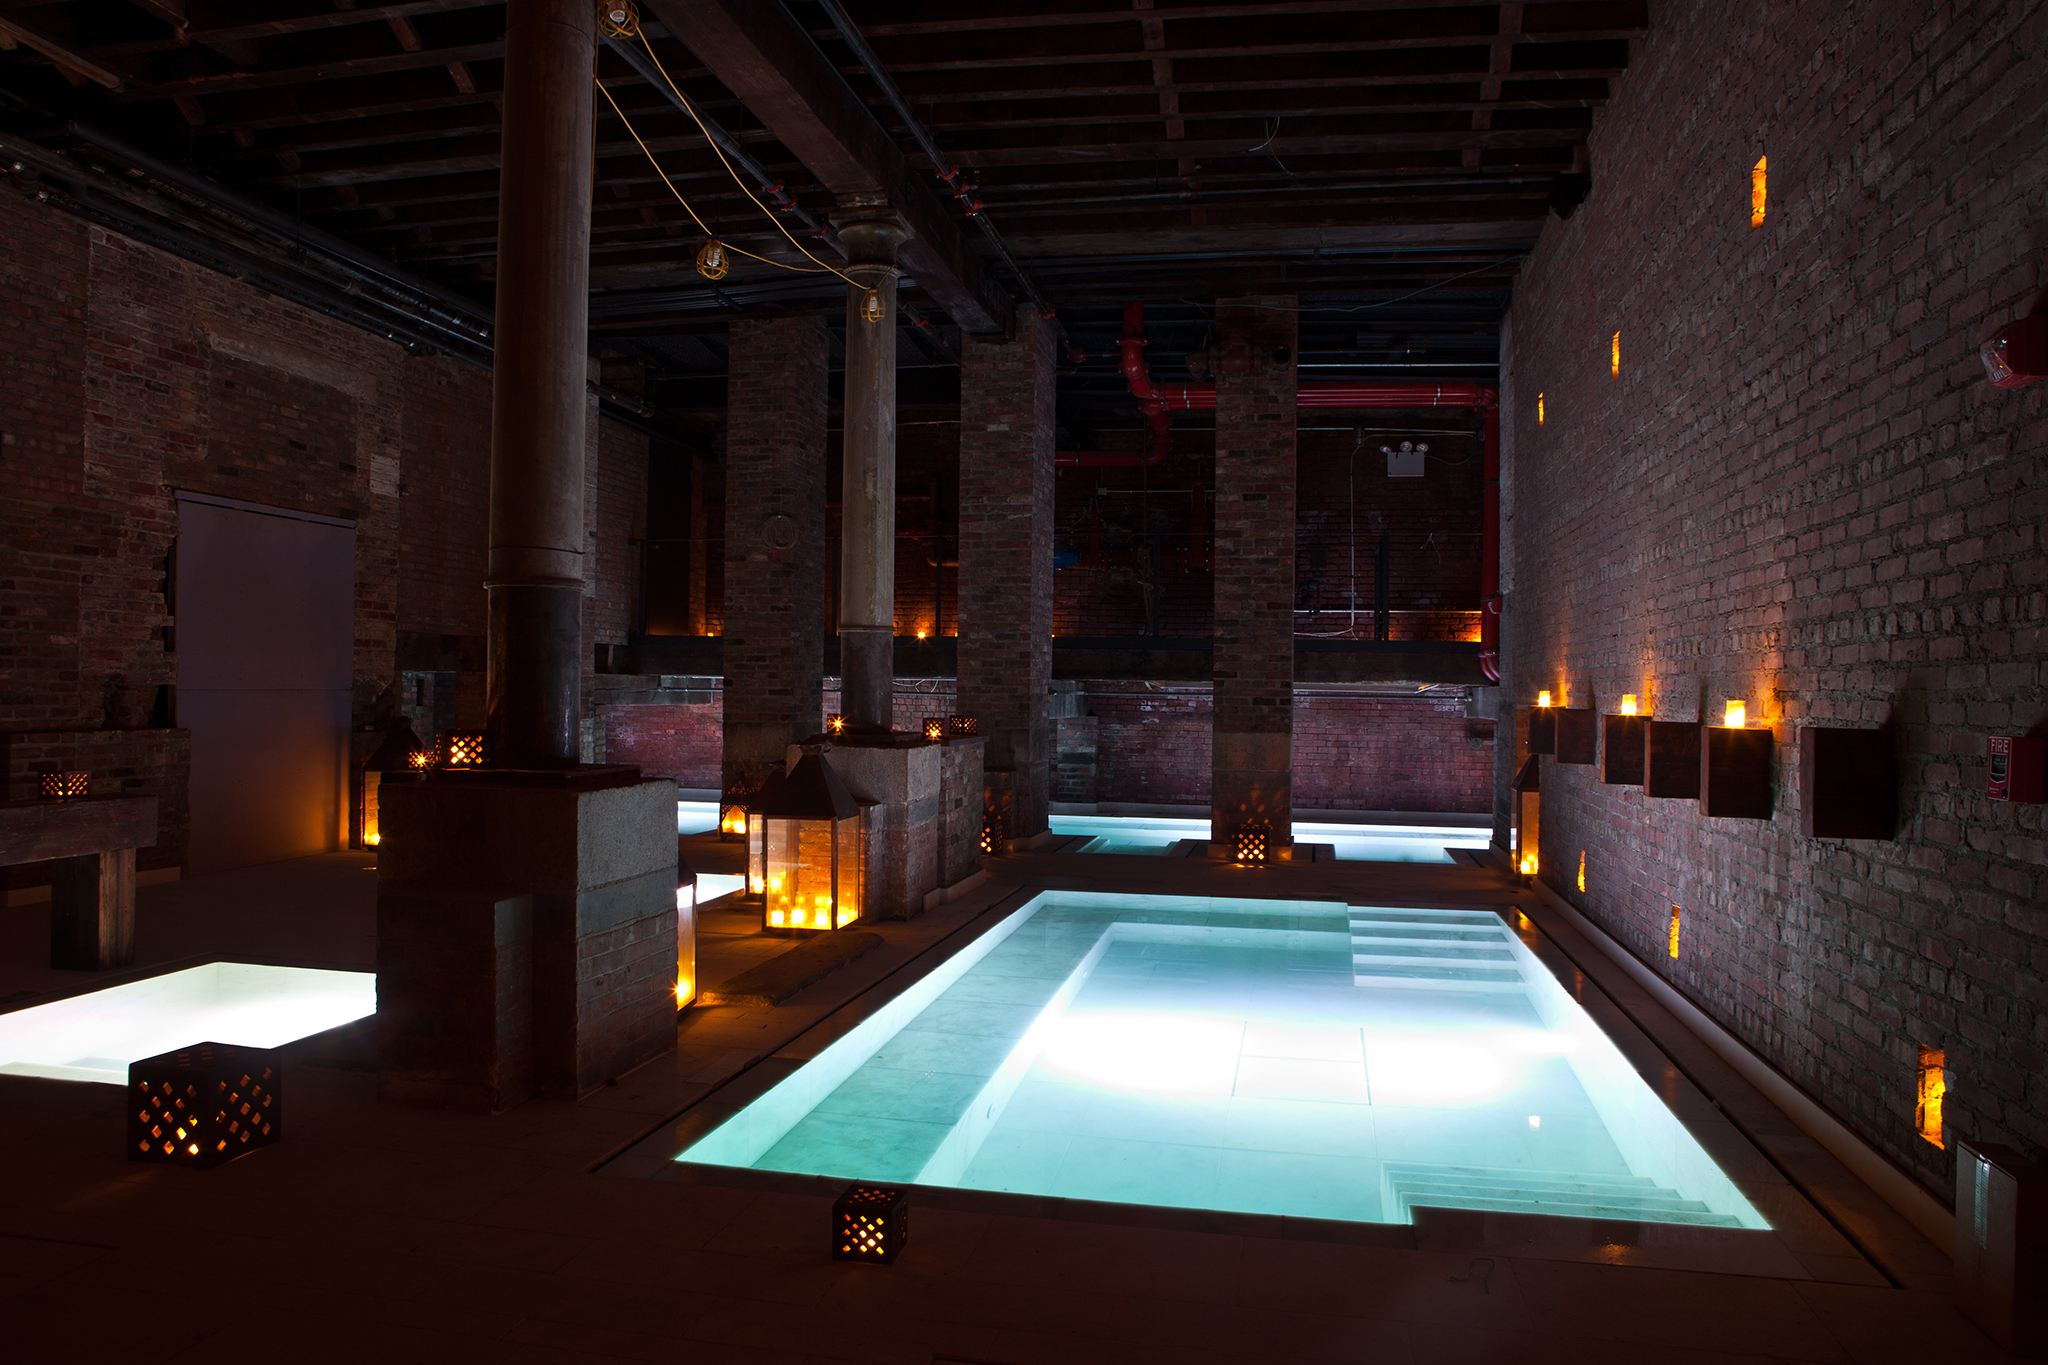 New York spas with hot pools, saunas and steam rooms to warm you up